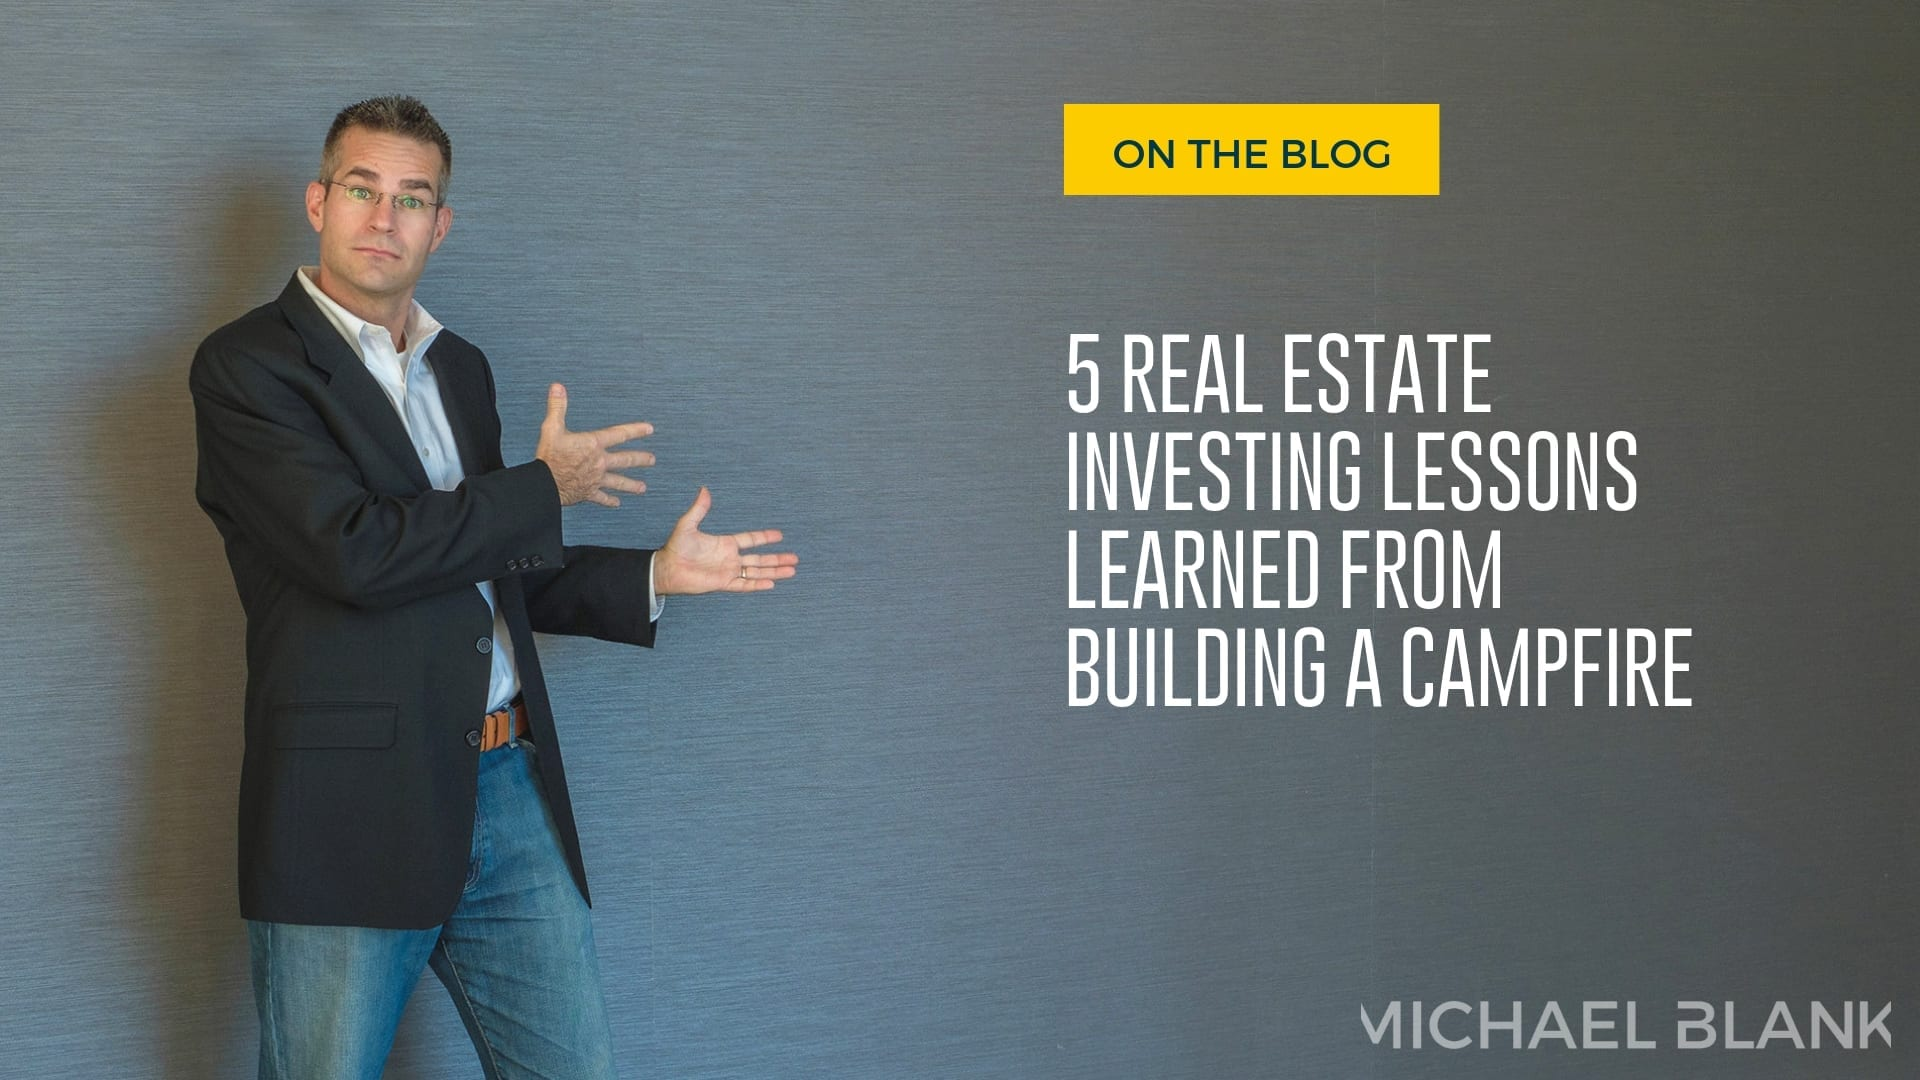 5 Real Estate Investing Lessons Learned From Building a Campfire